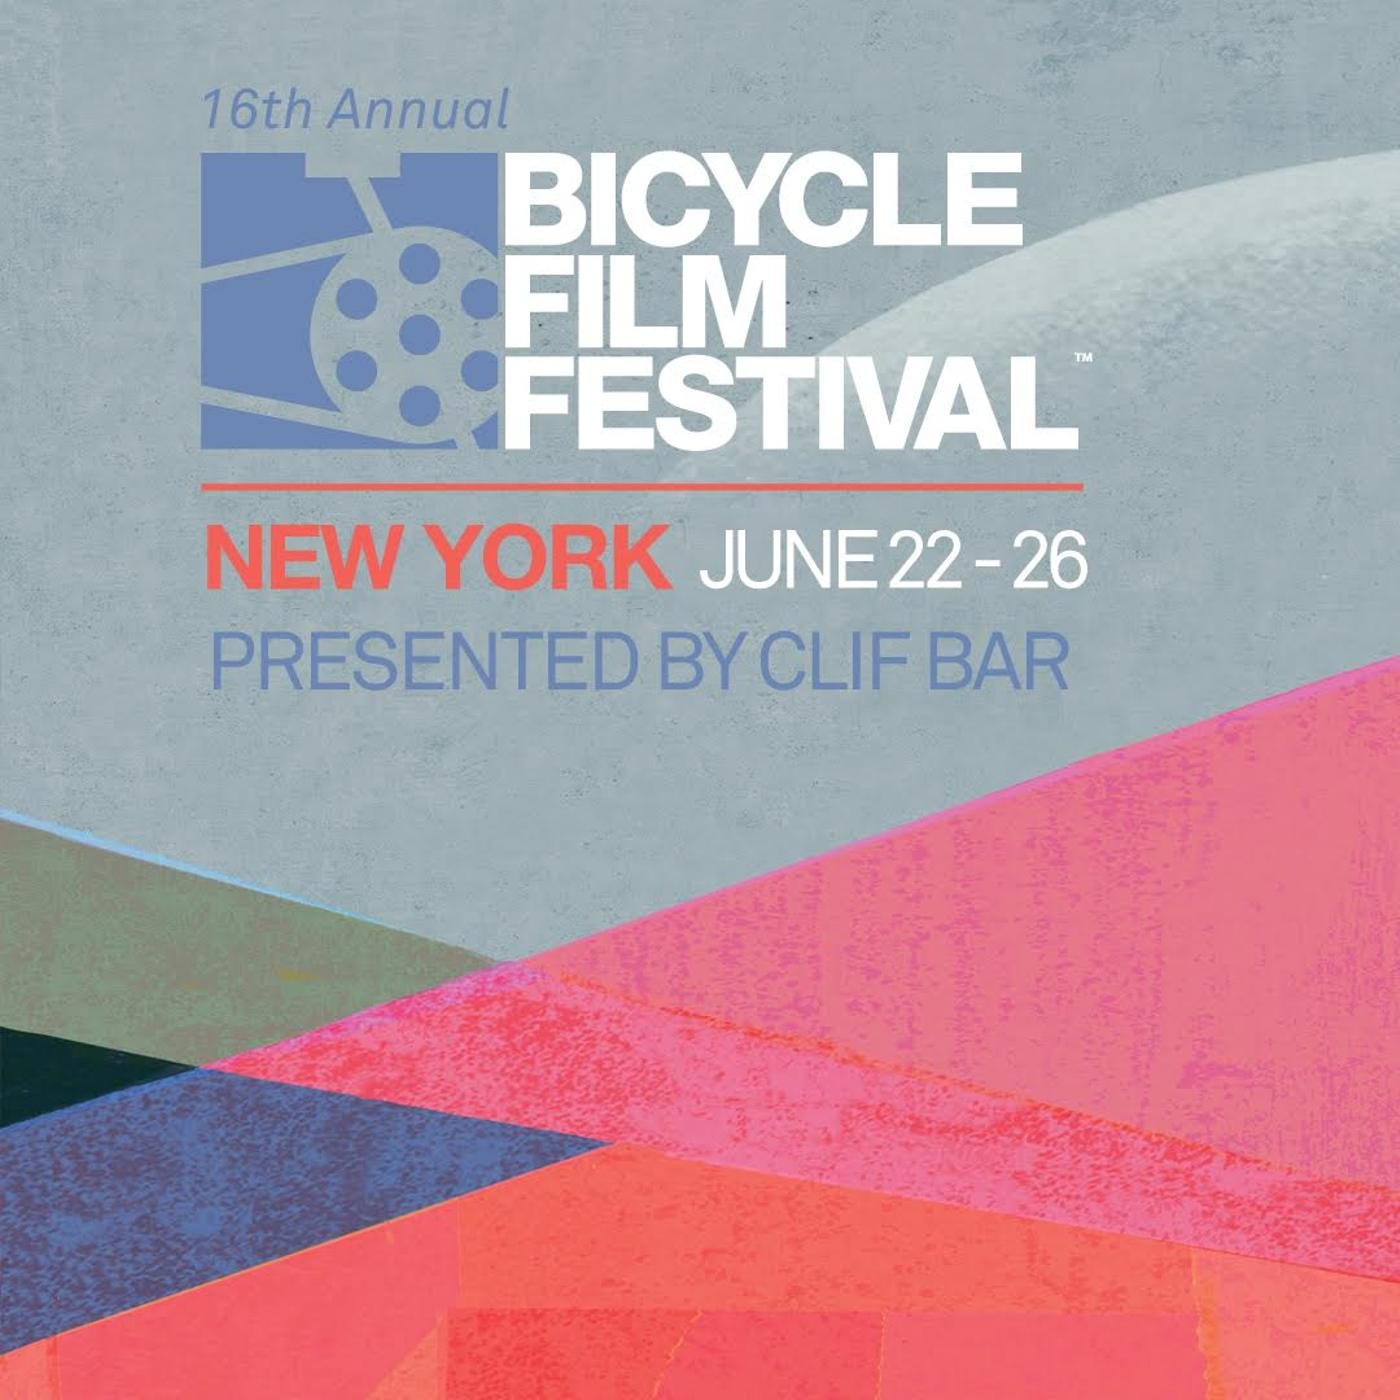 The Bicycle Film Festival NYC is This Weekend!